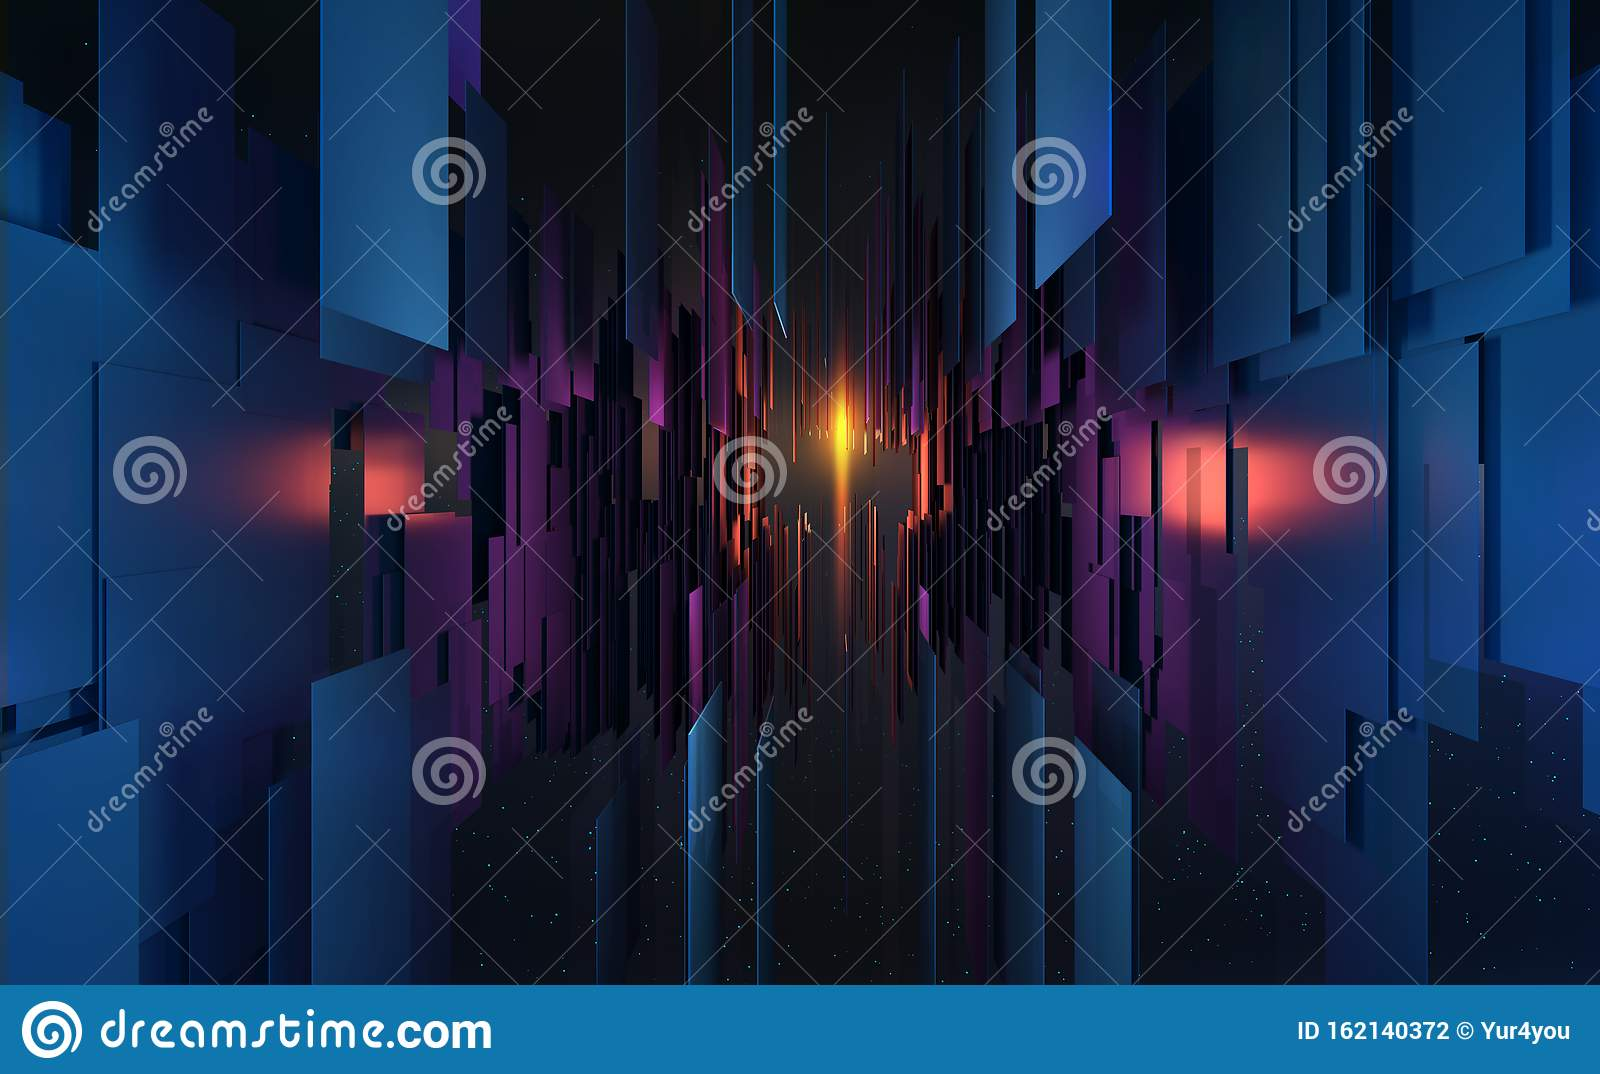 https://thumbs.dreamstime.com/z/abstract-purple-neon-background-digital-technology-concept-high-tech-internet-network-abstract-purple-neon-background-digital-162140372.jpg